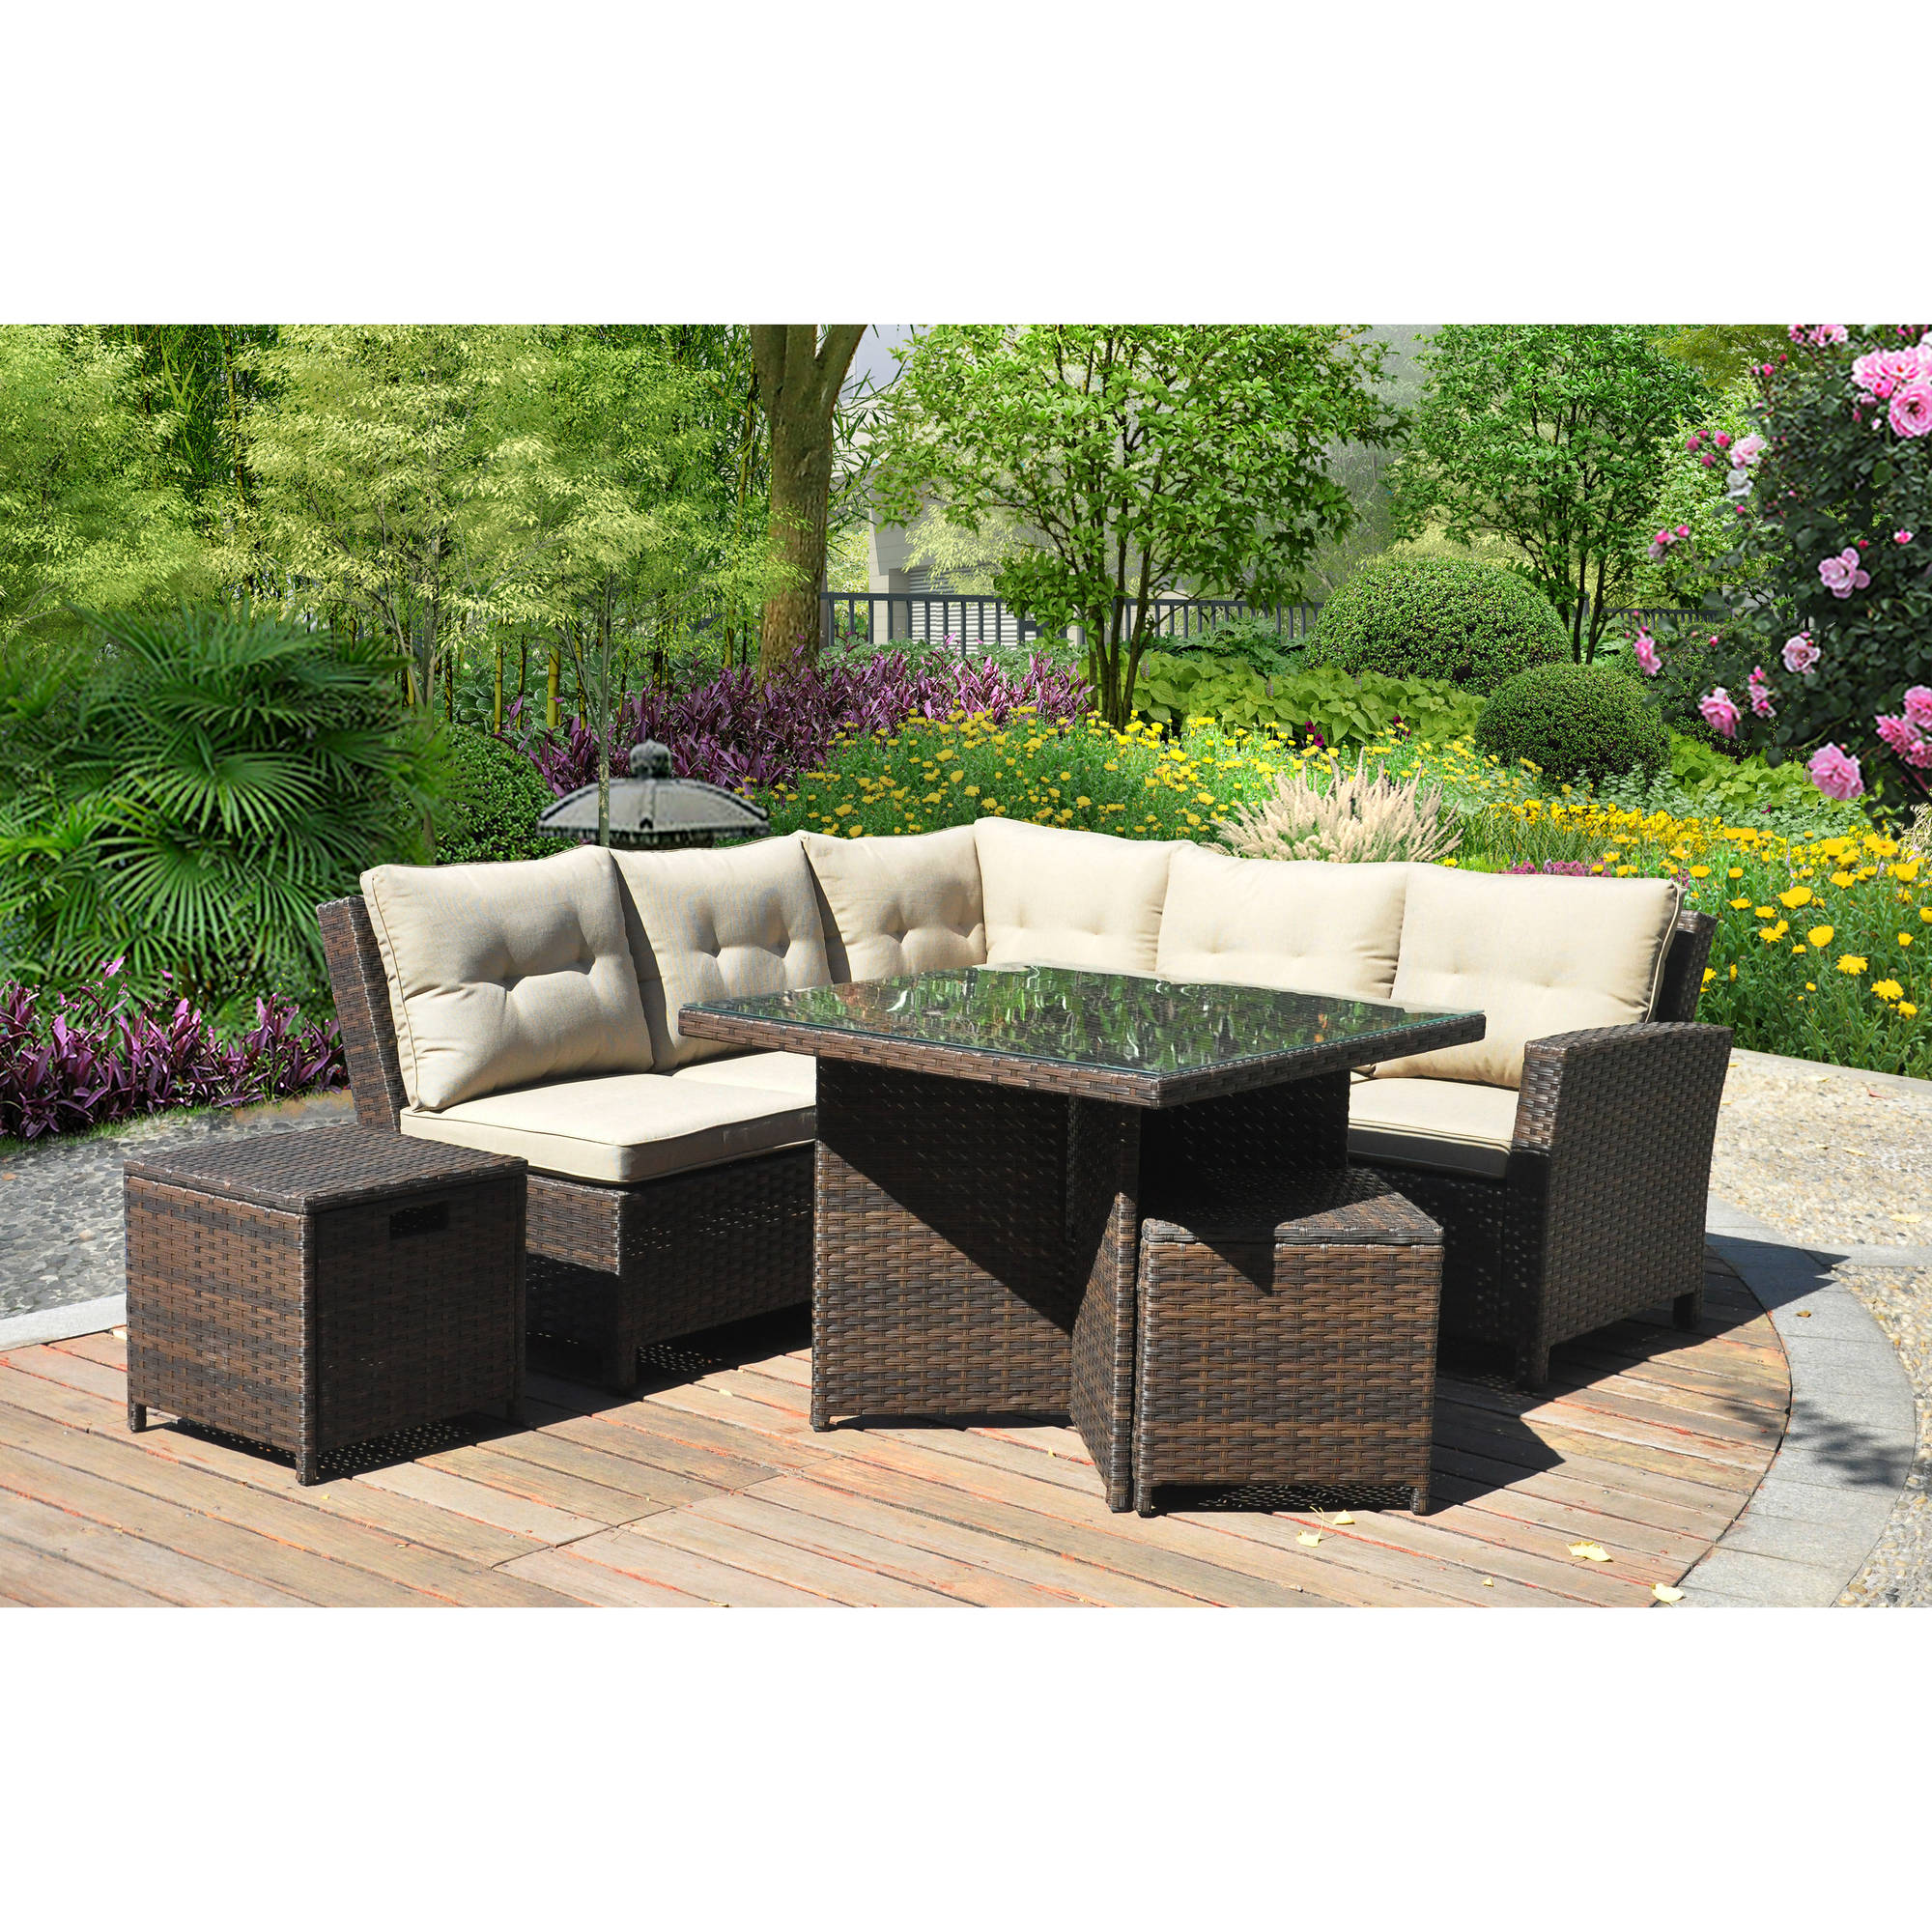 mainstays ragan meadow ii 7 piece outdoor sectional sofa seats 5 walmartcom